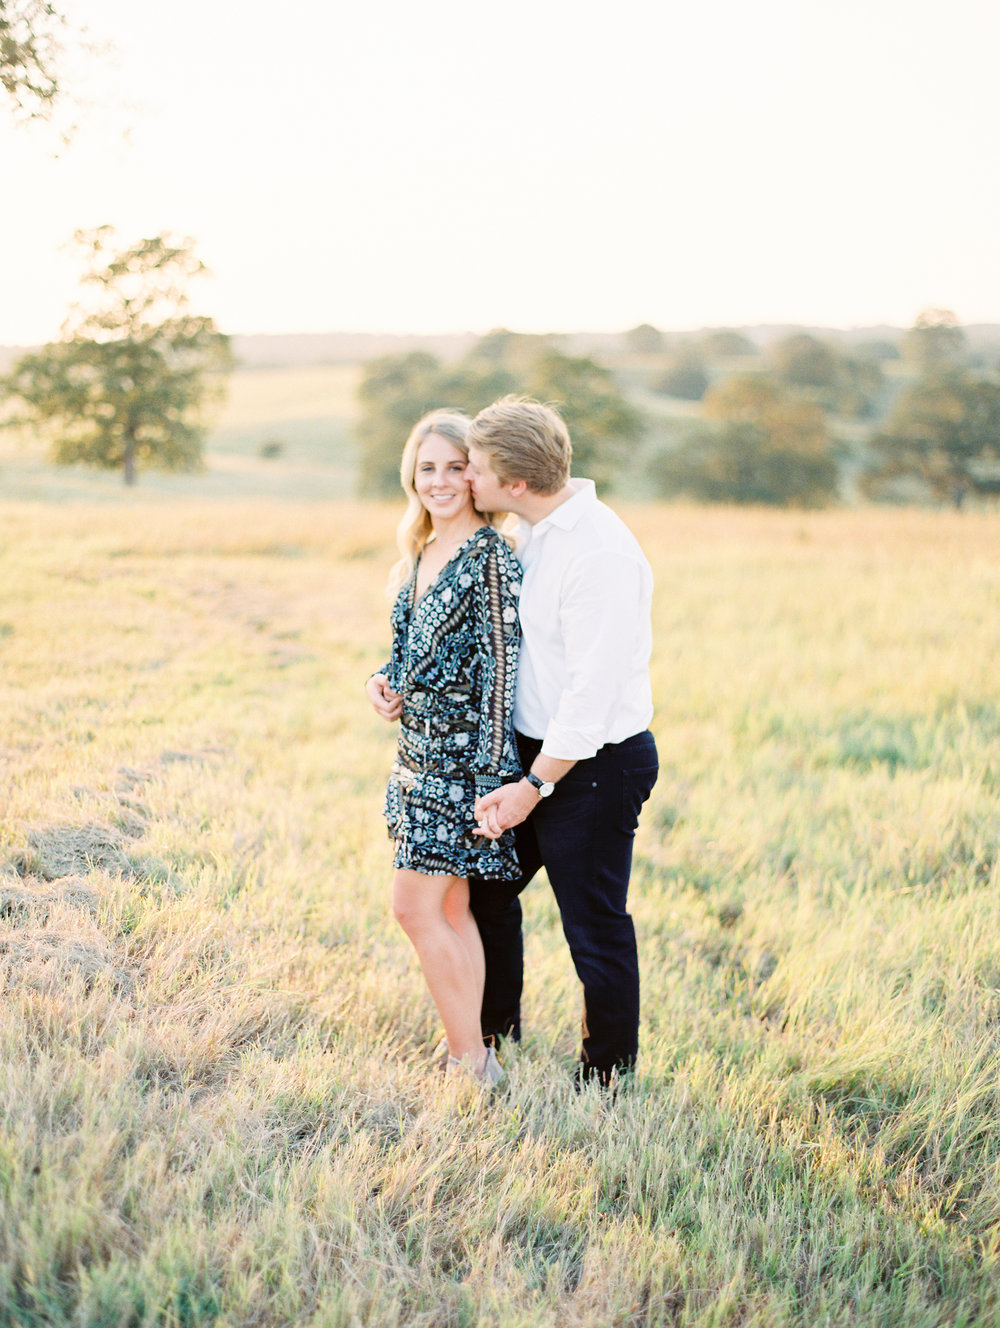 Lauren+John+Engaged+TX-71.jpg